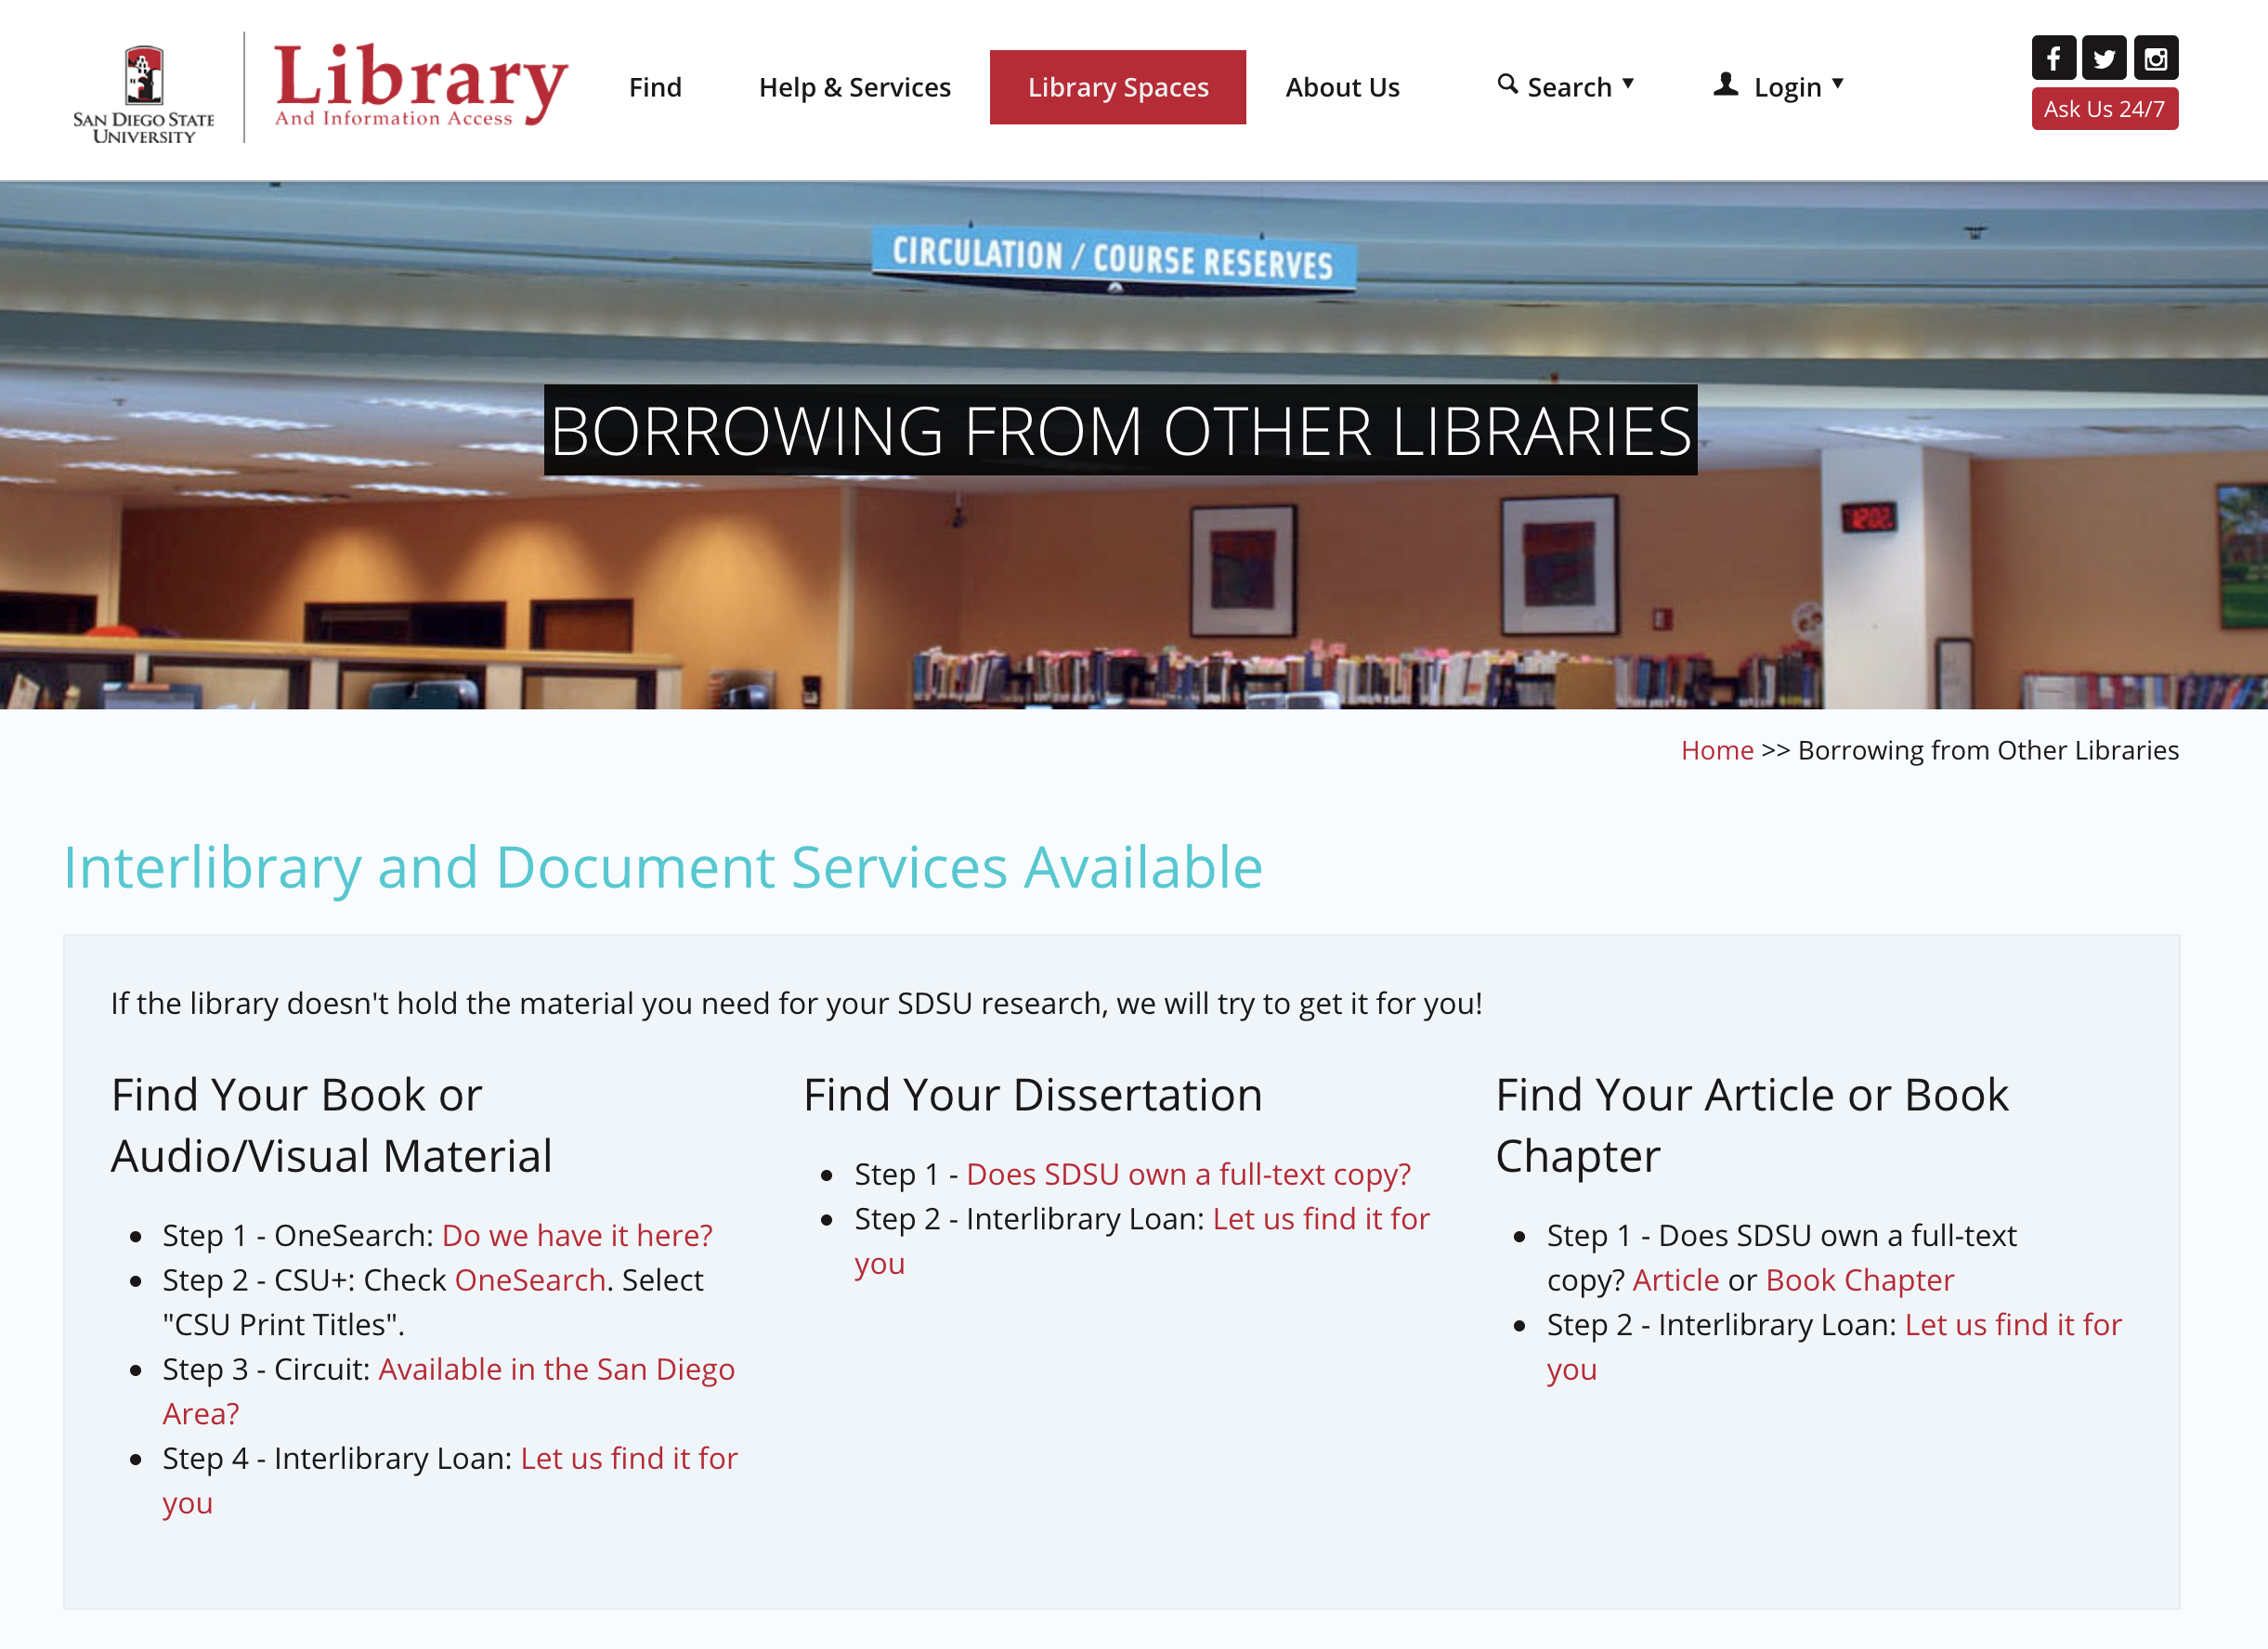 Borrowing from other libraries